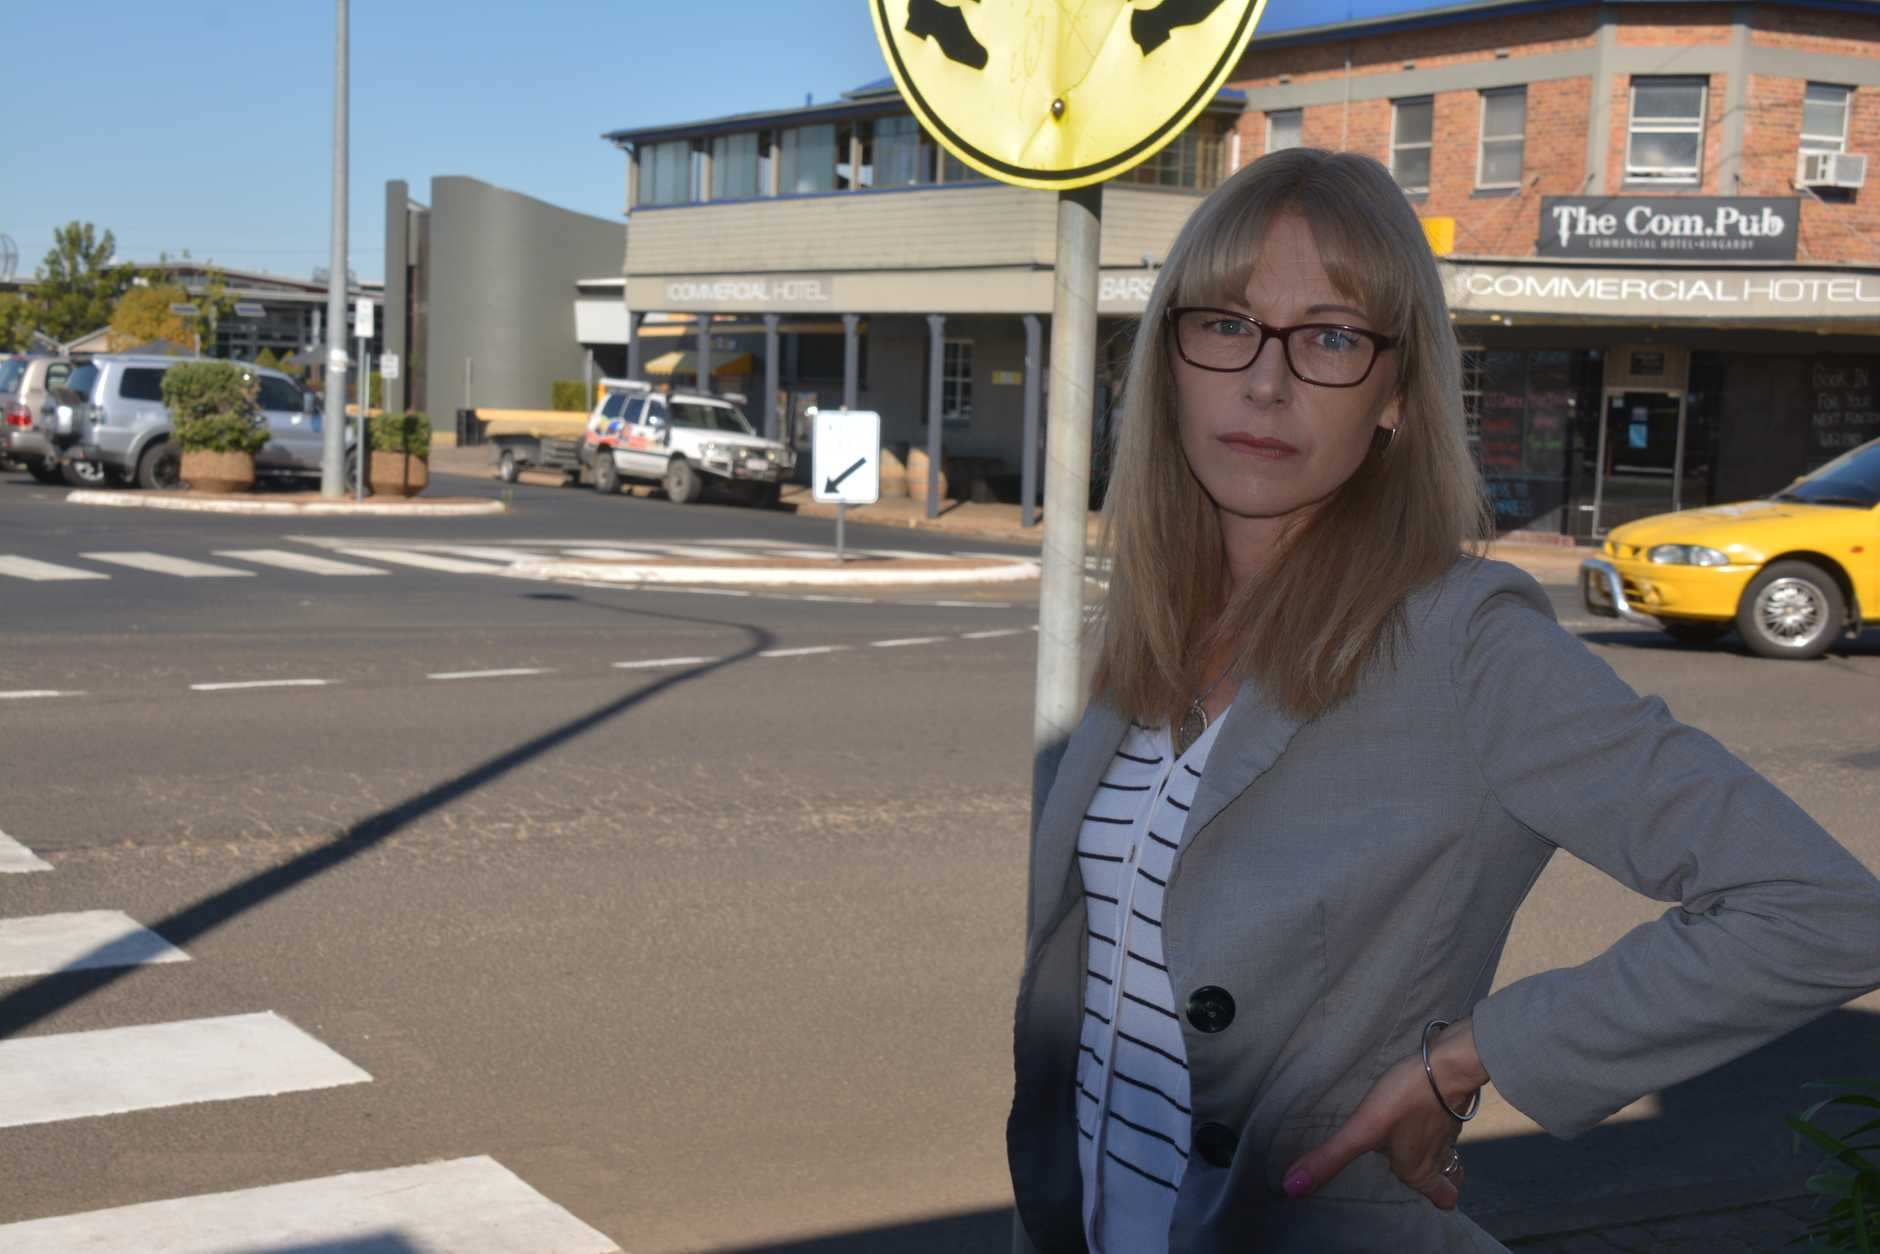 South Burnett Times office manager, Sharon Jones, was struck by a car on the Haly St pedestrian crossing yesterday.